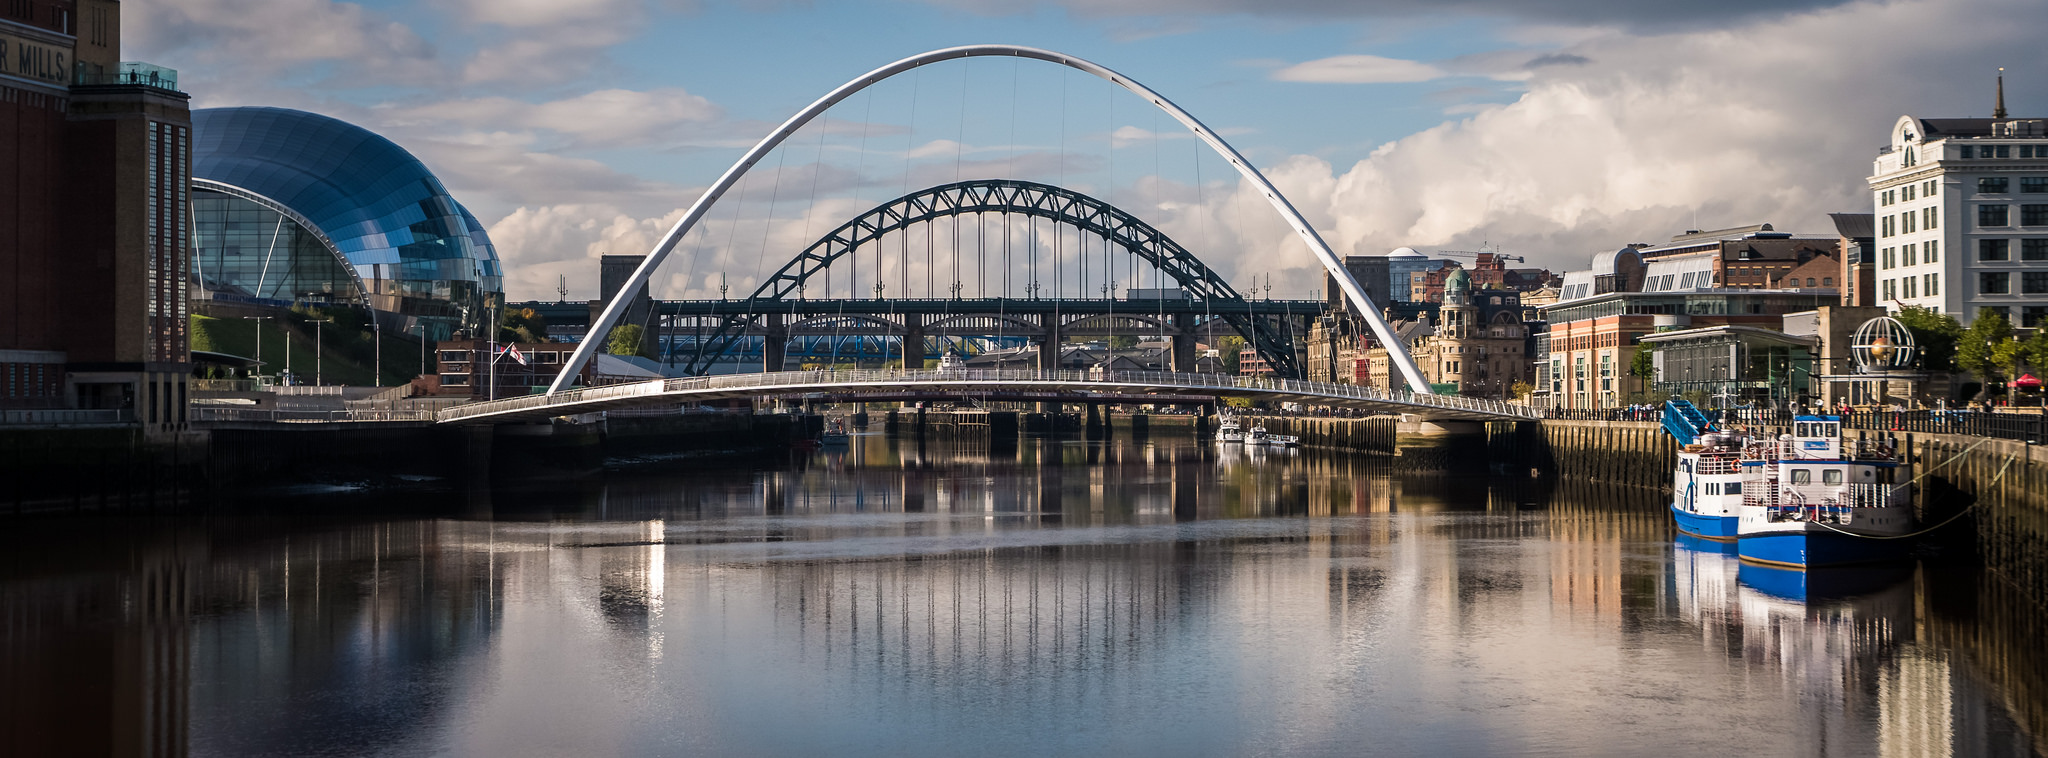 newcastle upon tyne chat Benefits contact details  newcastle city council civic centre newcastle upon tyne ne1 8qh page last updated: 11 may 2018 was this page useful.